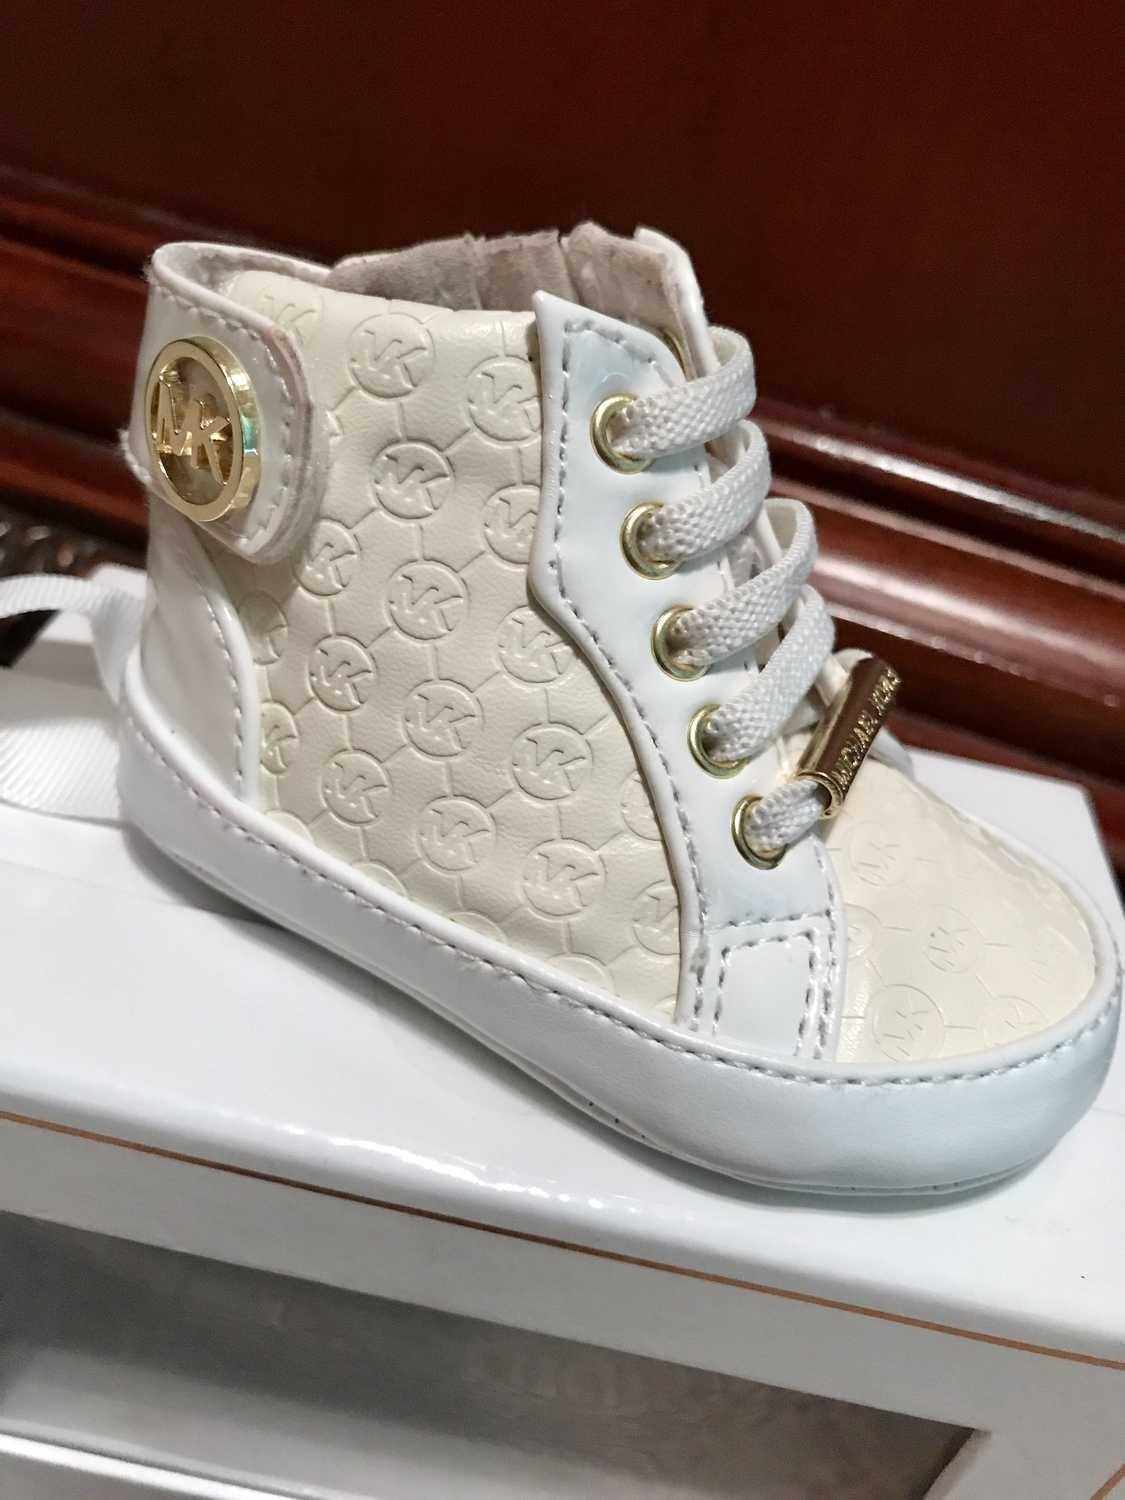 d60919698eb Find more Size 1 Michael Kors Crib Shoes (unisex) for sale at up to 90% off  - Brazoria County